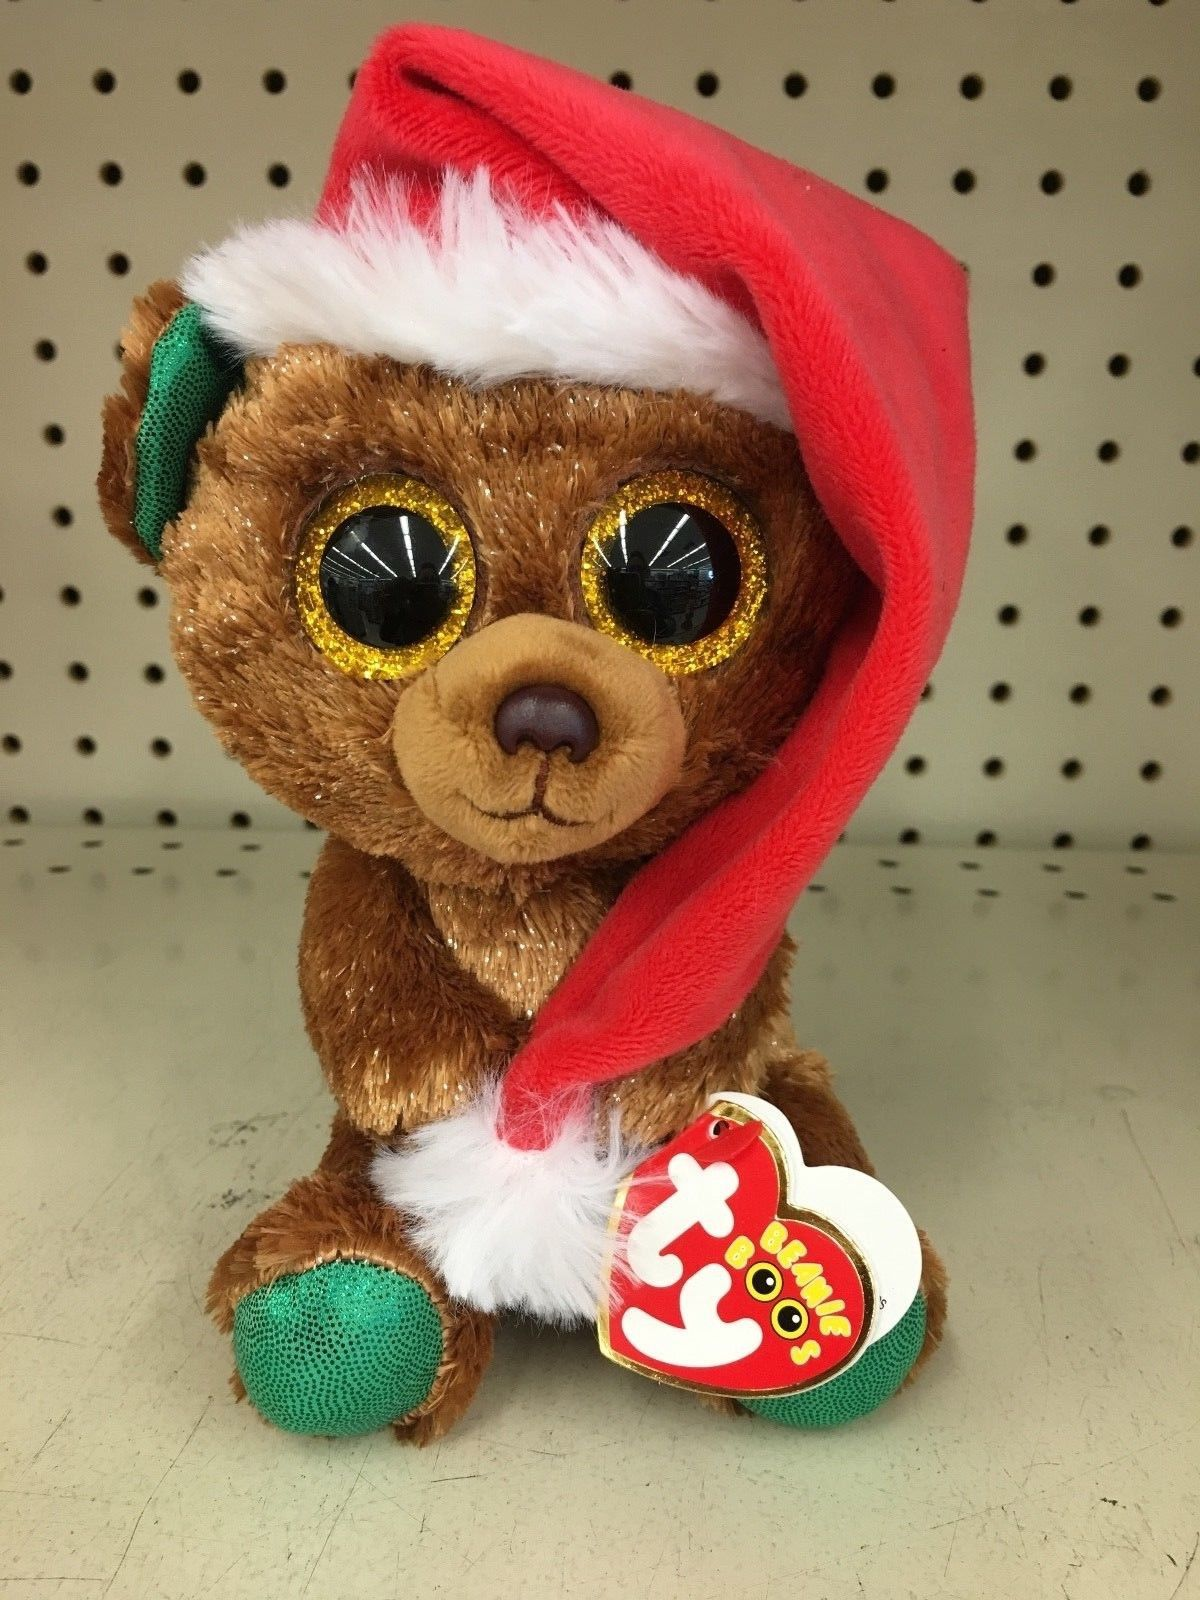 Current 438  Ty Beanie Boo Nicholas The Christmas Bear 6 Mwmt-In Hand In  Us! -  BUY IT NOW ONLY   11.99 on  eBay  current  beanie  nicholas   christmas d88d7aa0b42d